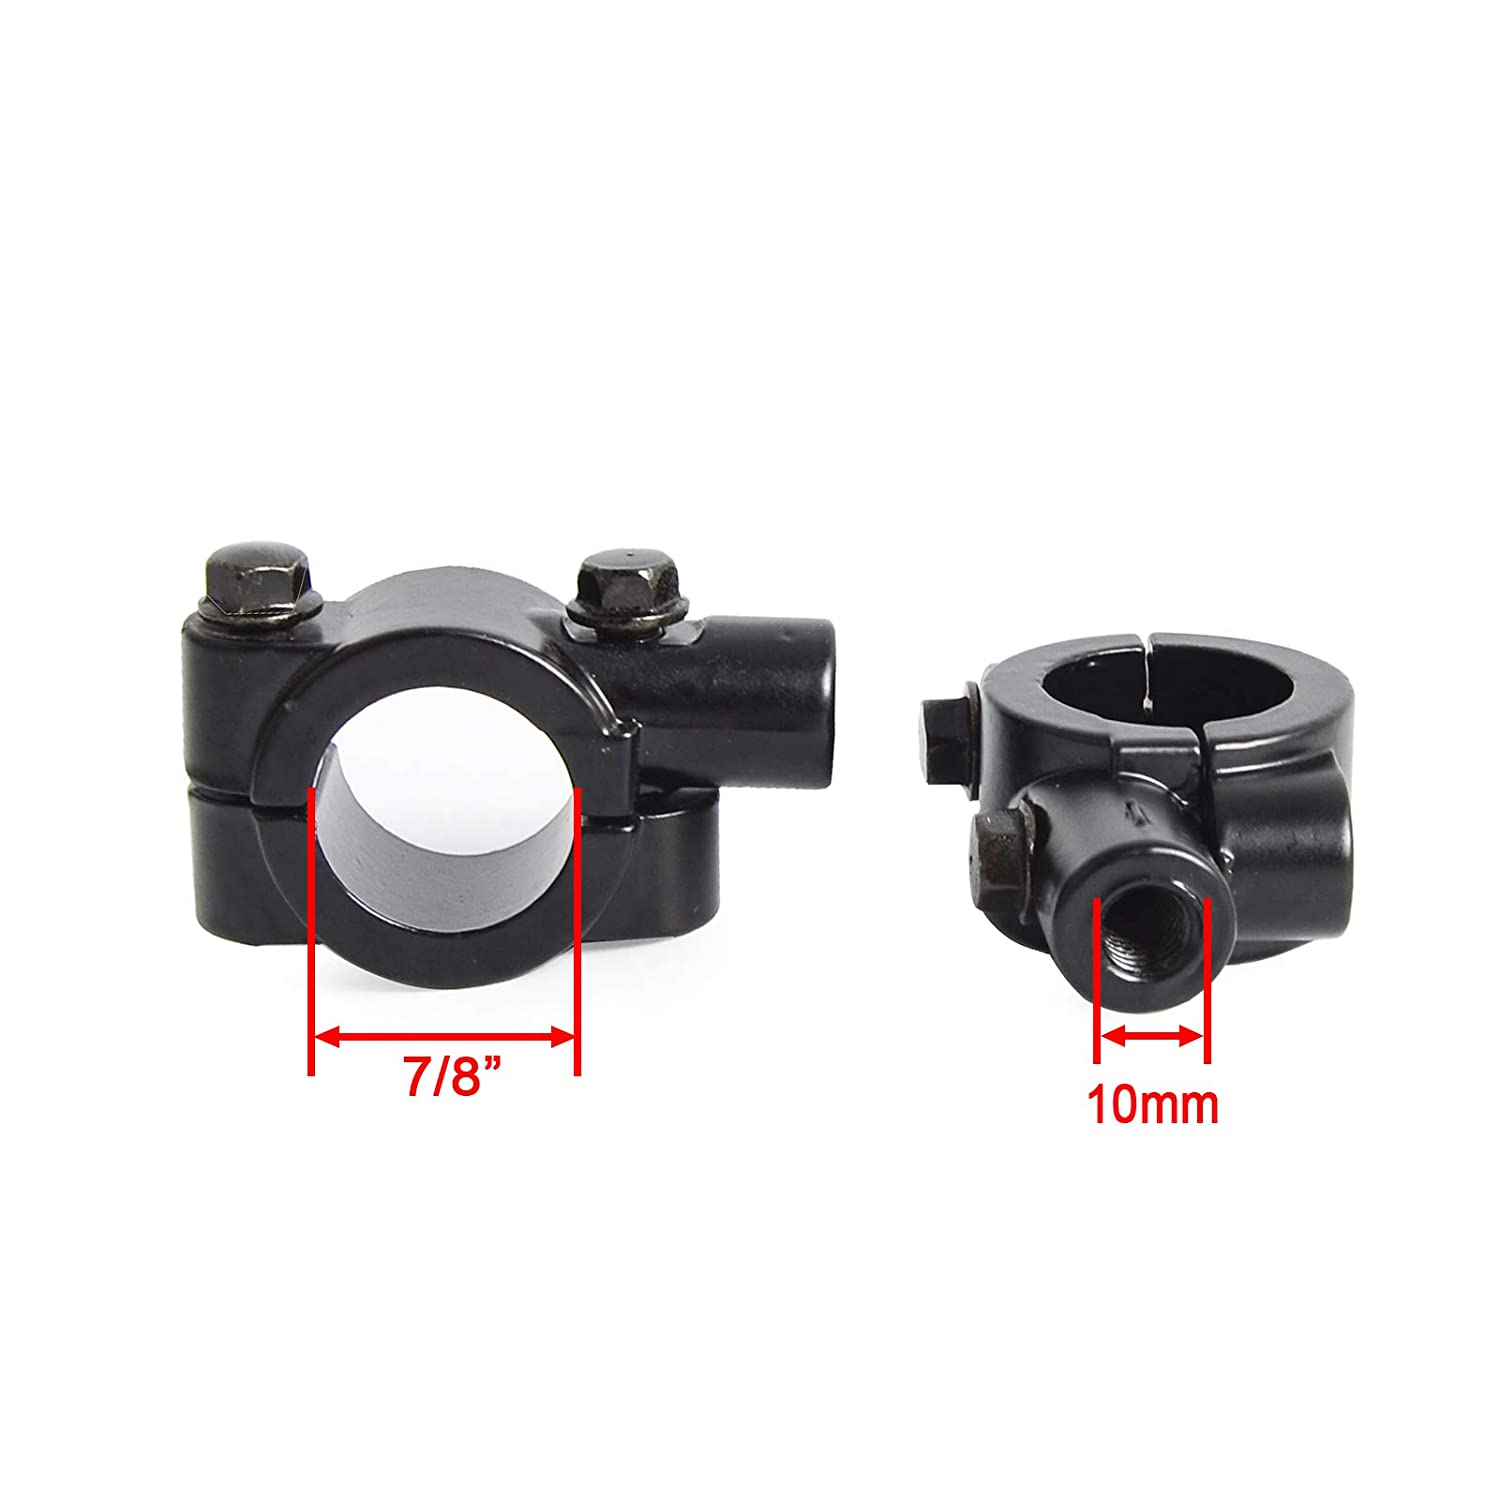 """Heart Horse Universal 10 mm Motorcycle Mirror Thread Mount Bracket Holder Compatible with Rear View Side Mirror 7//8/"""" 22mm Handlebar Clamp Adaptor Black pair"""